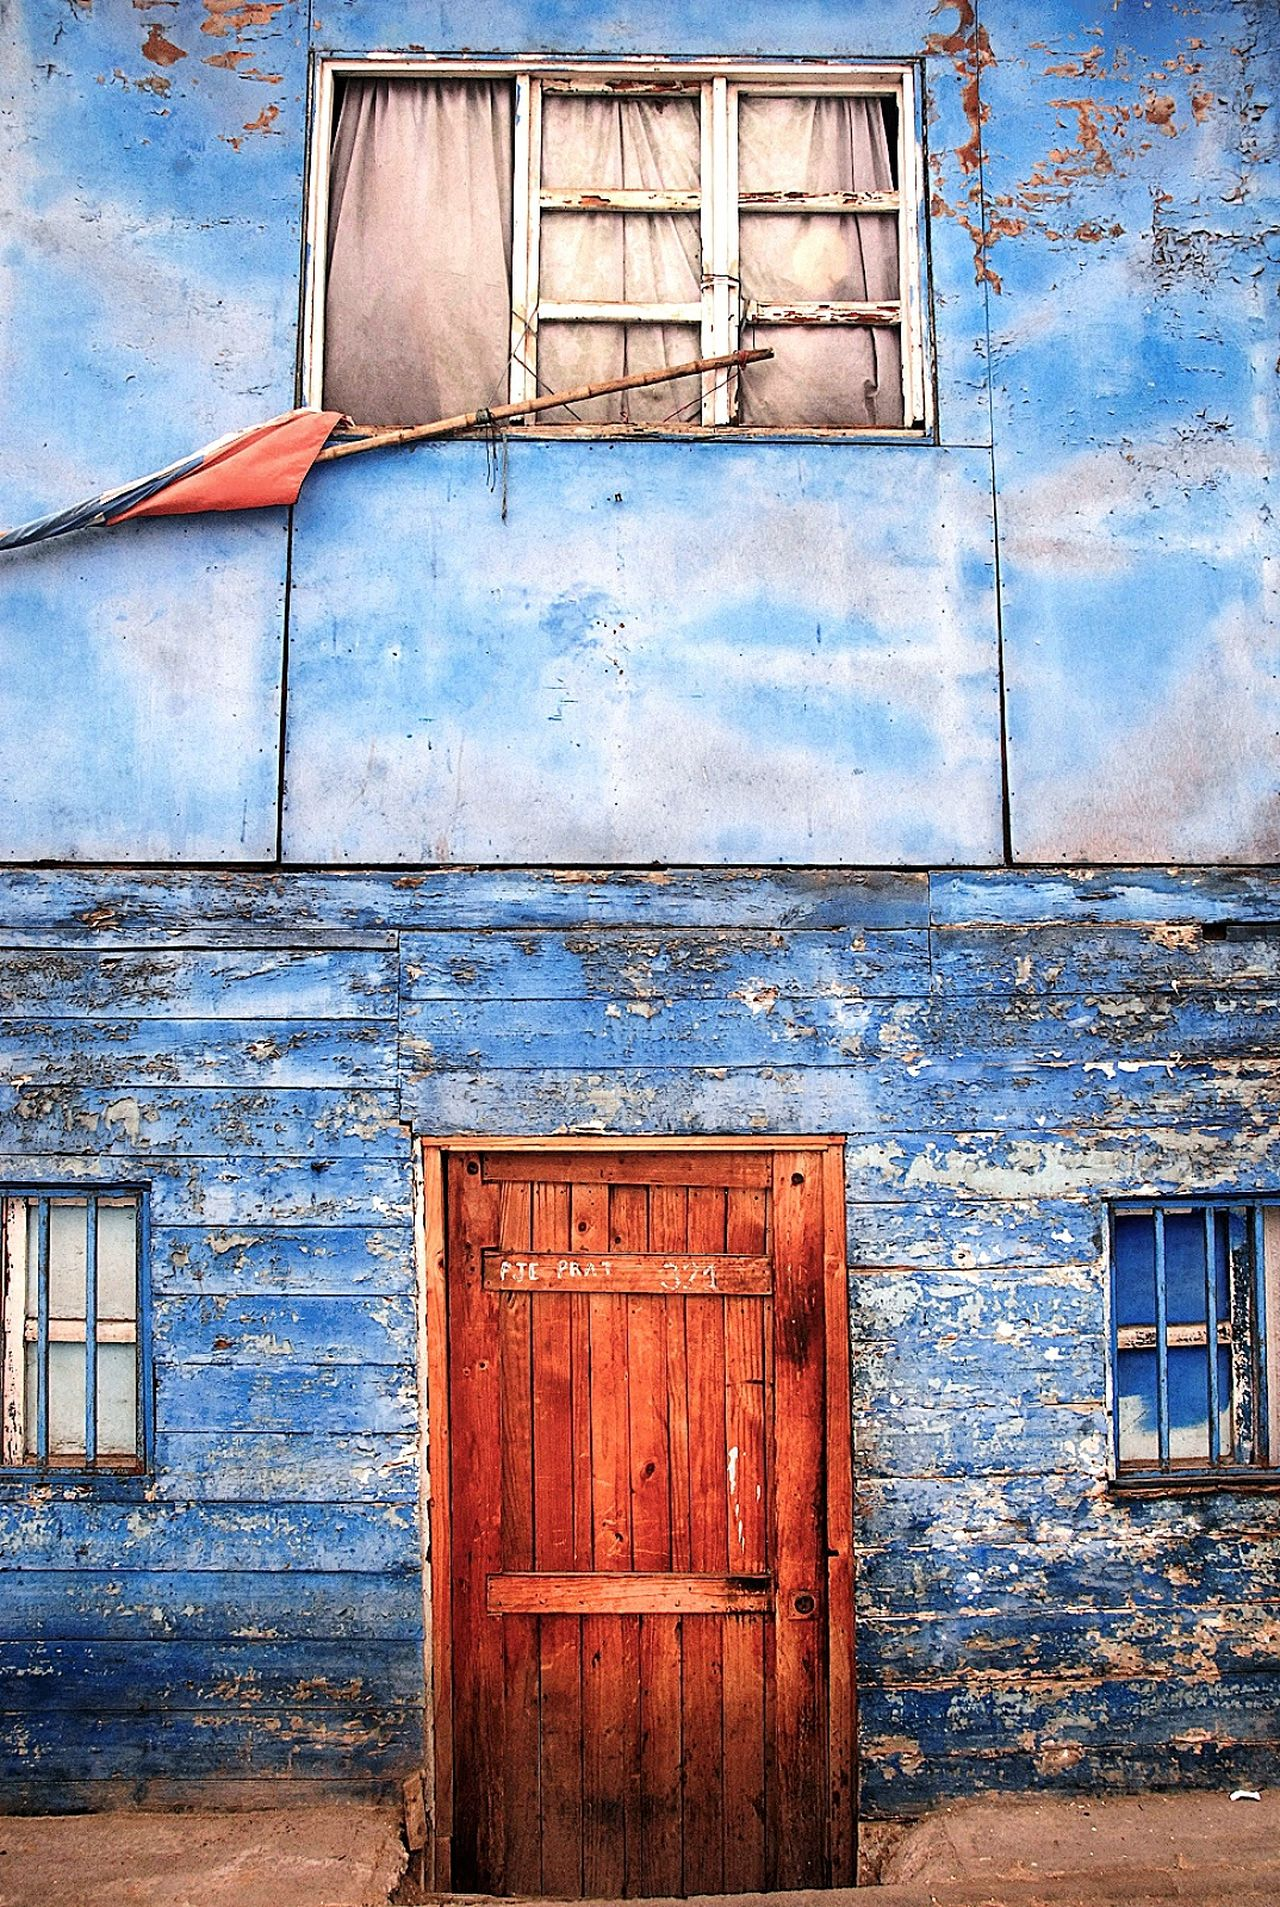 Architecture Built Structure Building Exterior Closed Door Day Outdoors Weathered No People Residential Building Full Frame Close-up Sky Iquique Chile